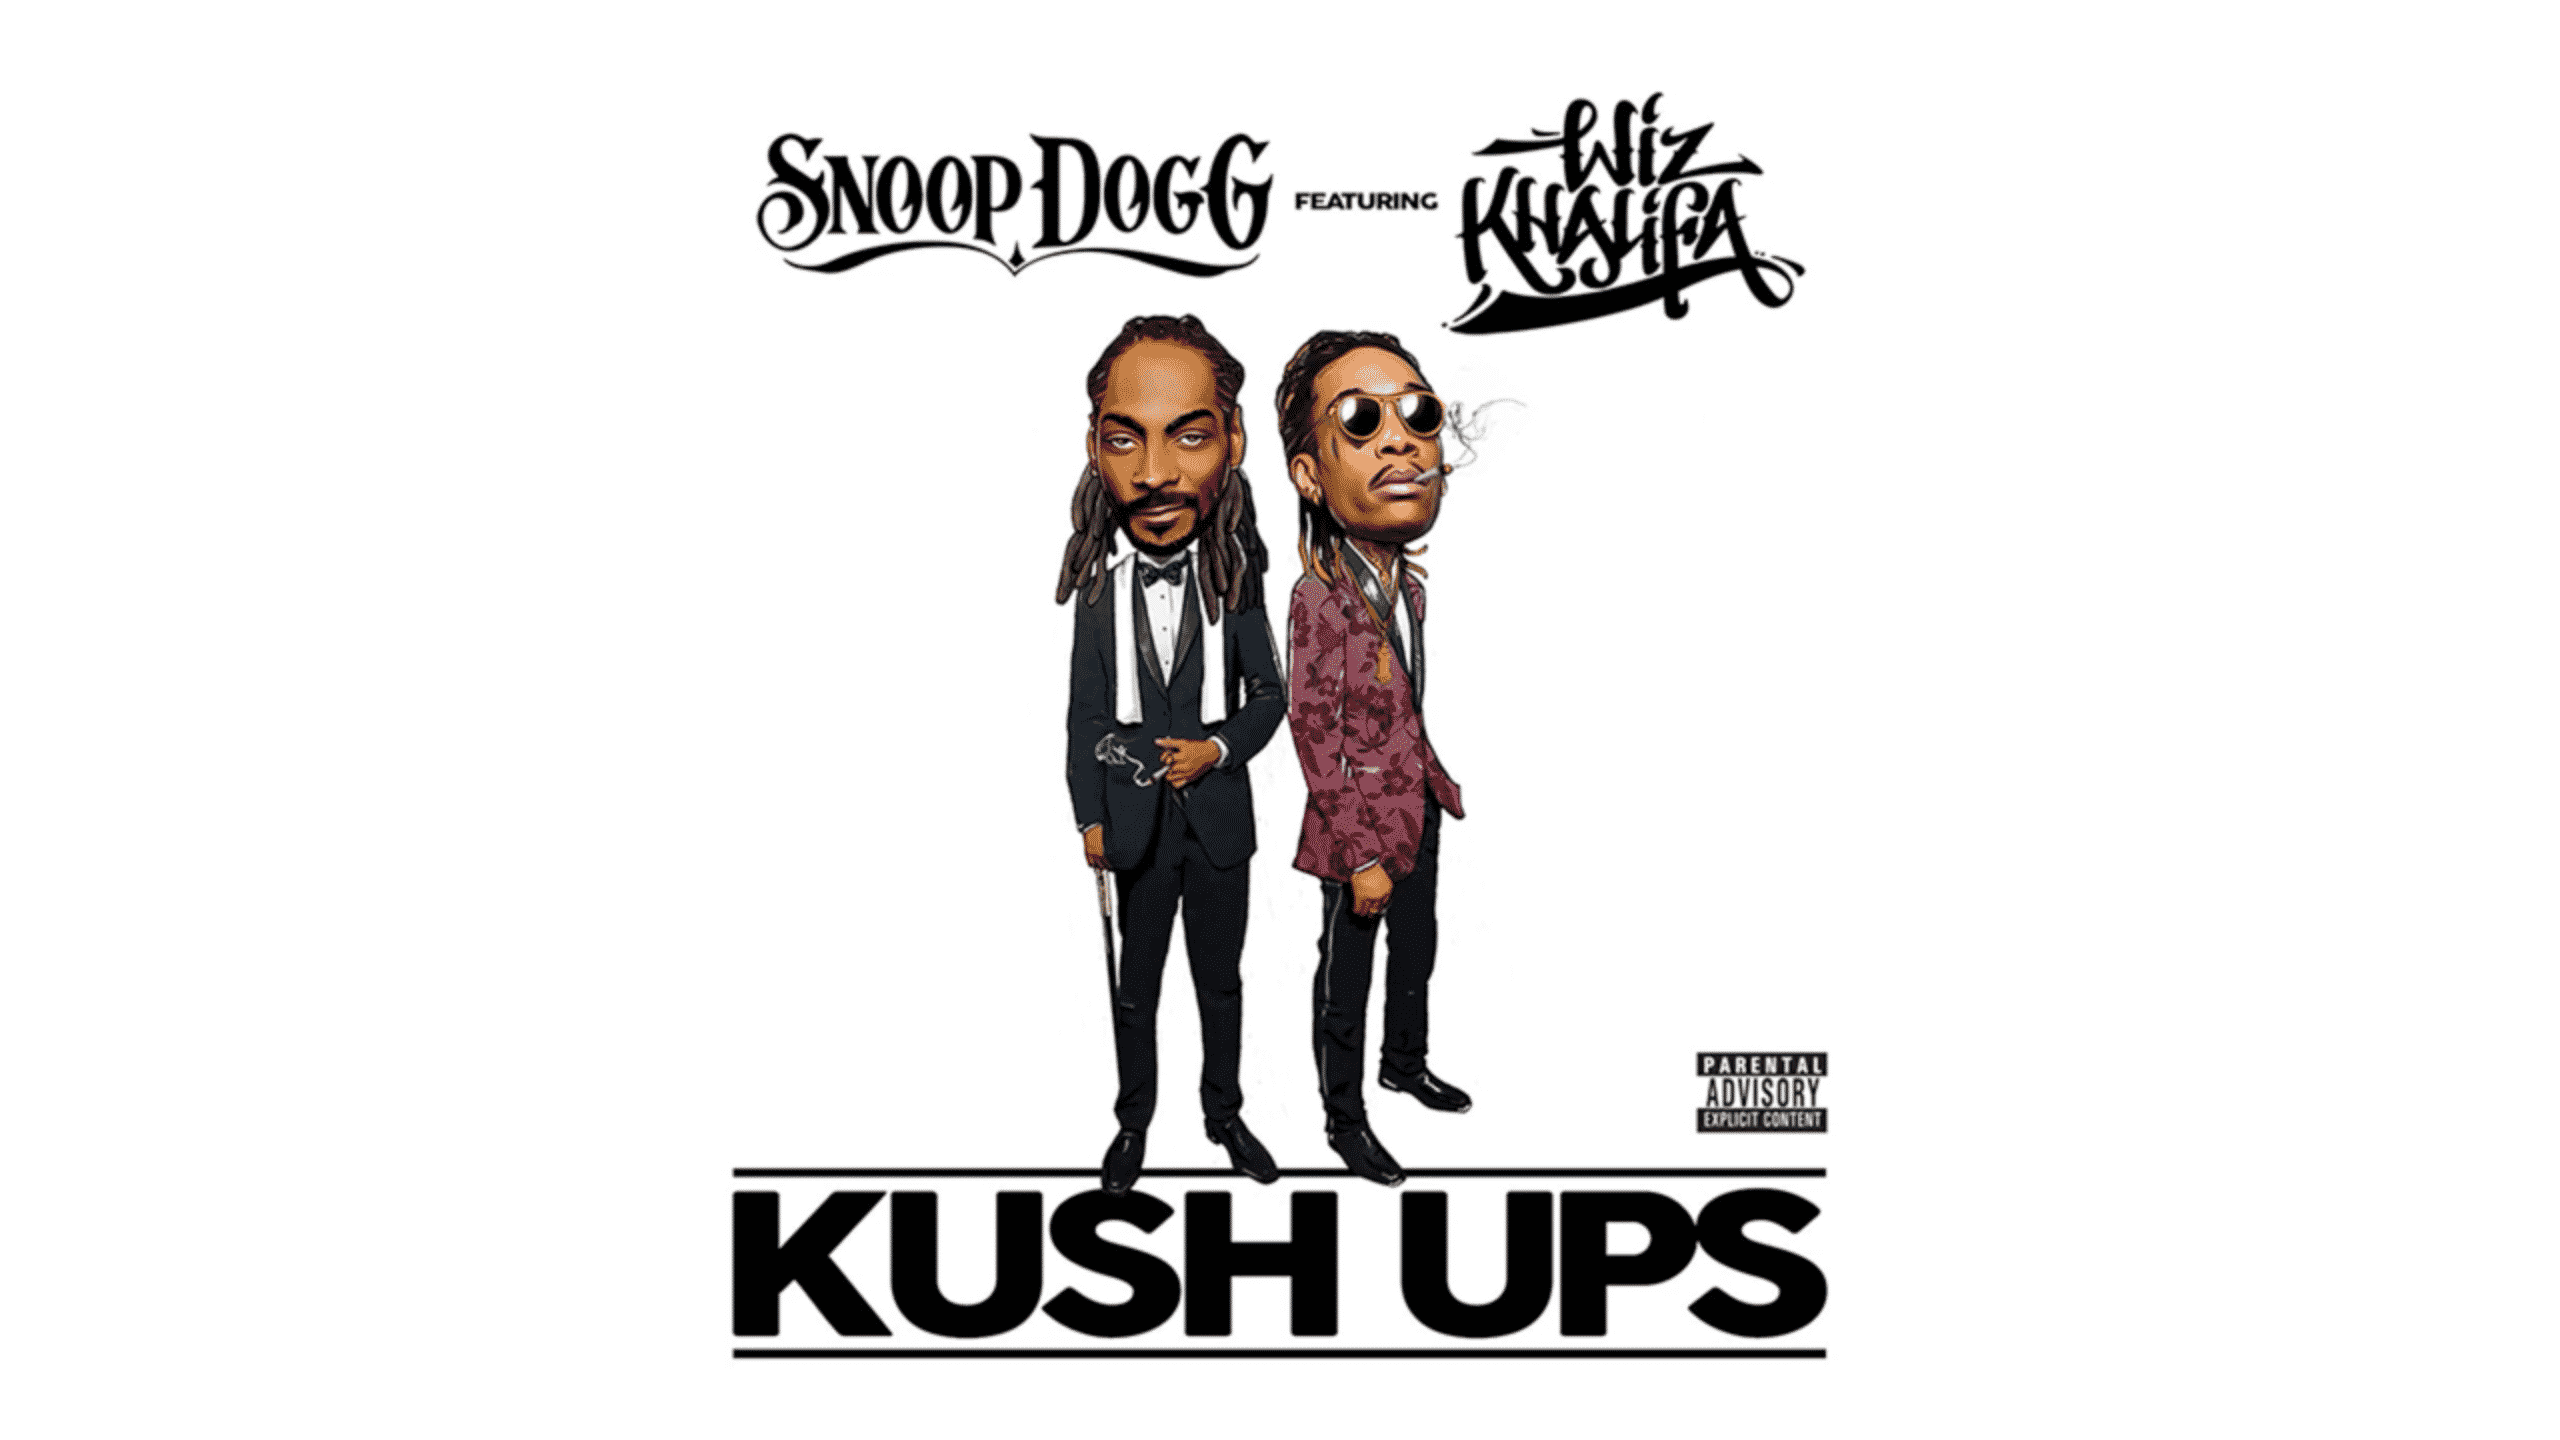 image snoop dogg son kush ups